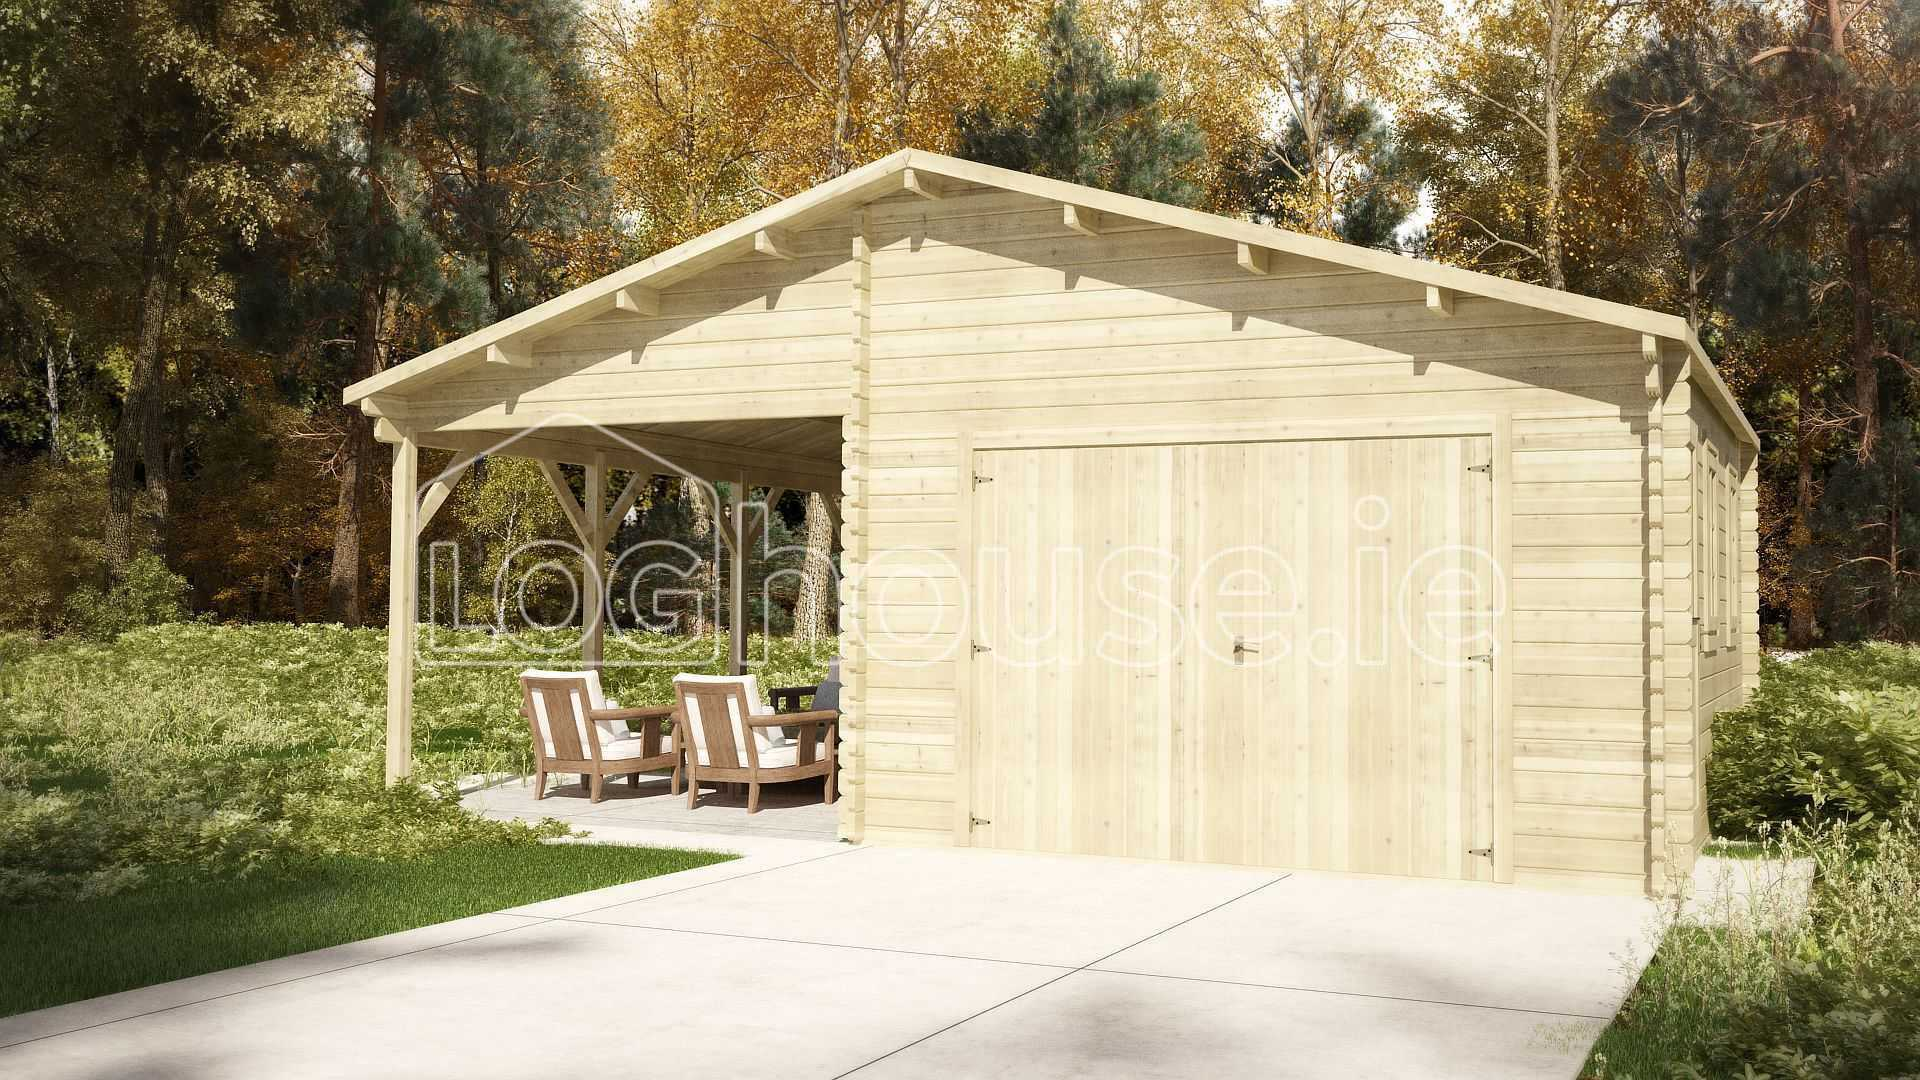 Saggart garage log cabin x Garage cabins